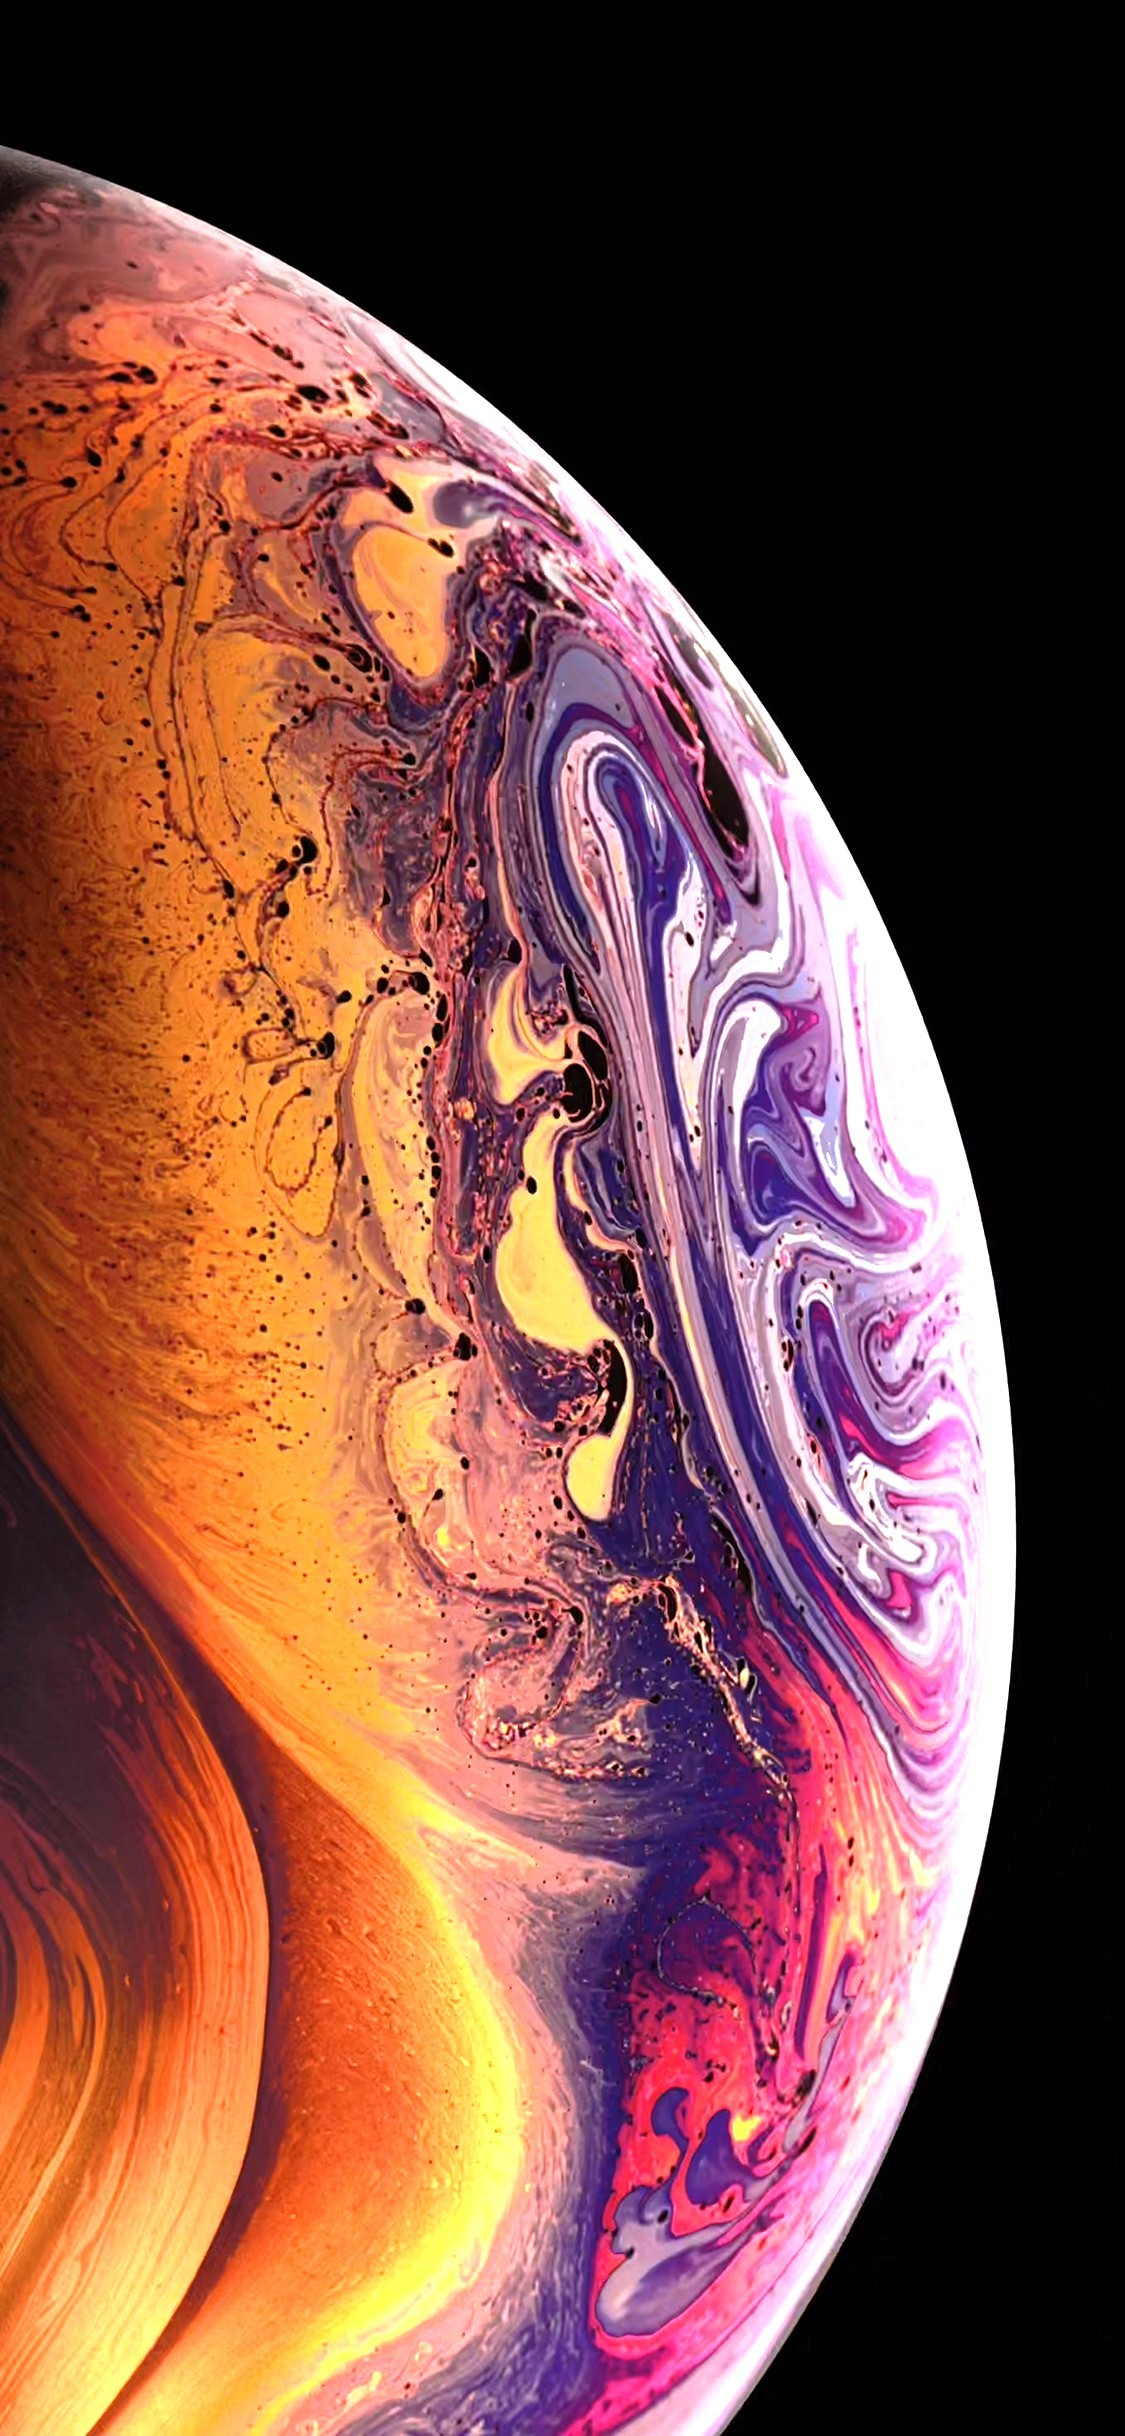 iPhone XS Wallpaper Lock Screen 2021 3D iPhone Wallpaper